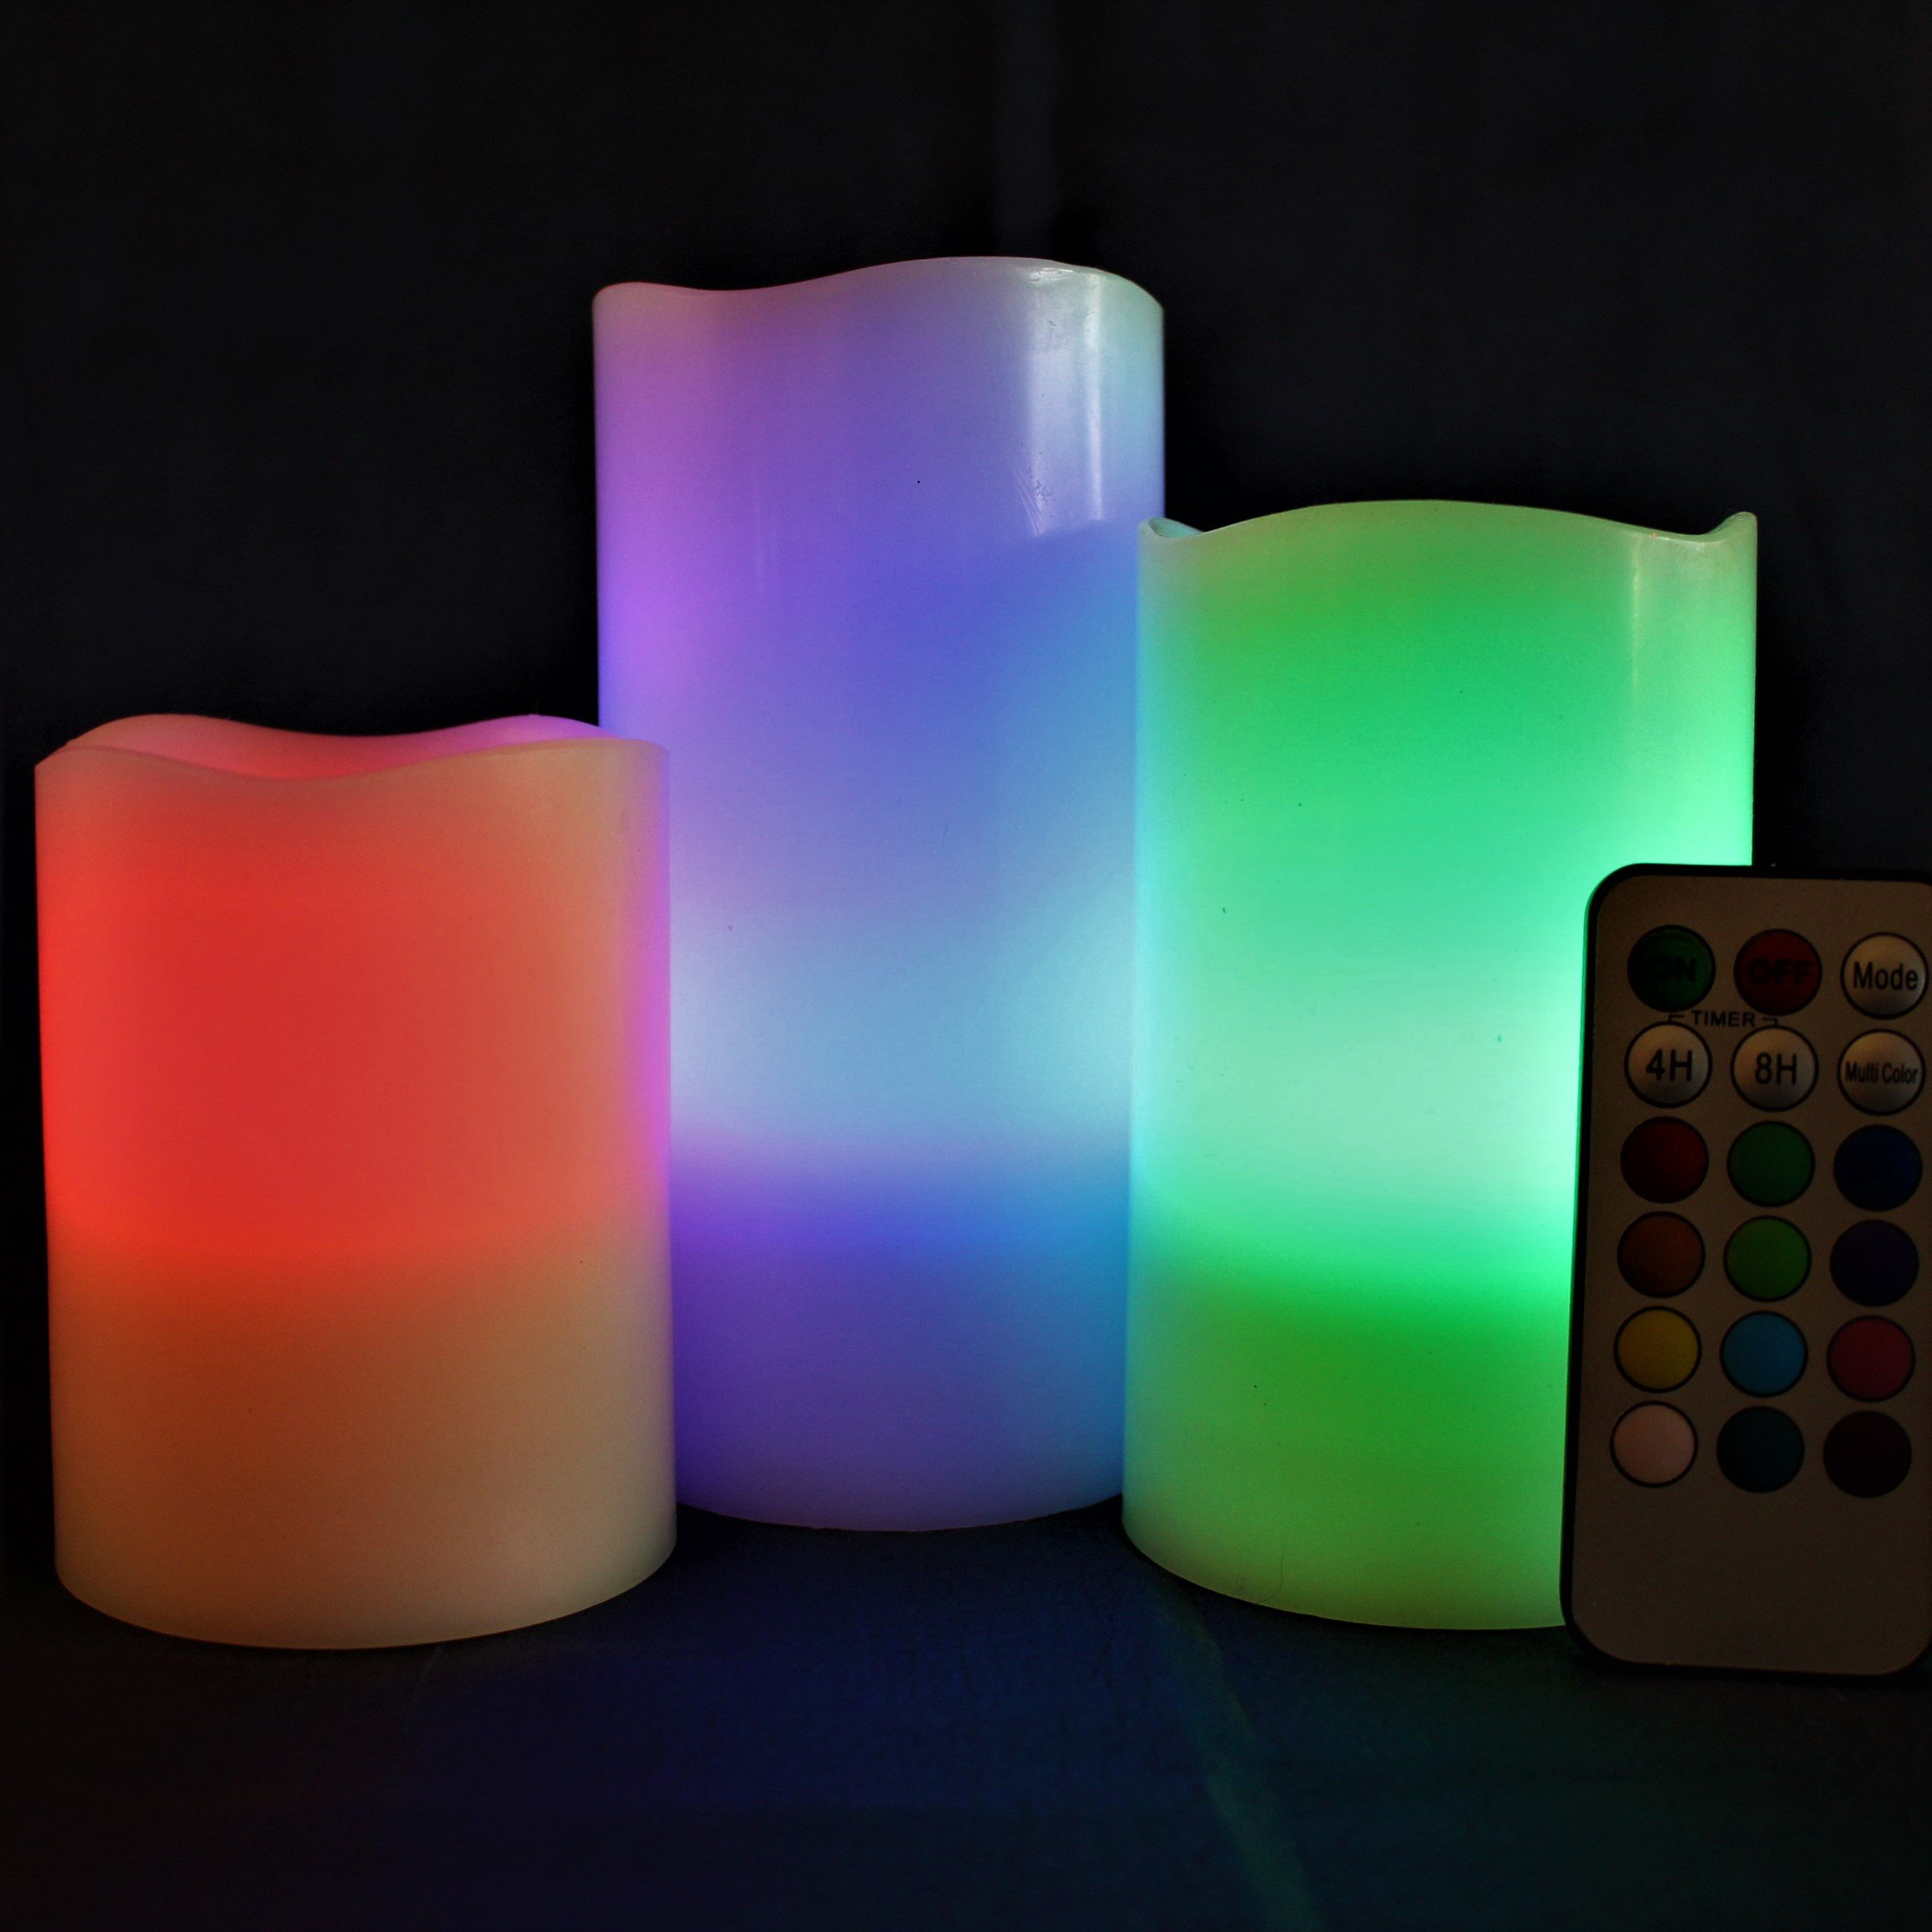 LED Lytes Flickering Flameless Candles - Battery Operated Candles Vanilla Scented Set of 3 Round Ivory Wax Flickering Multi Colored Flame, auto-Off Timer Remote Control Weddings Gifts by LED Lytes (Image #7)